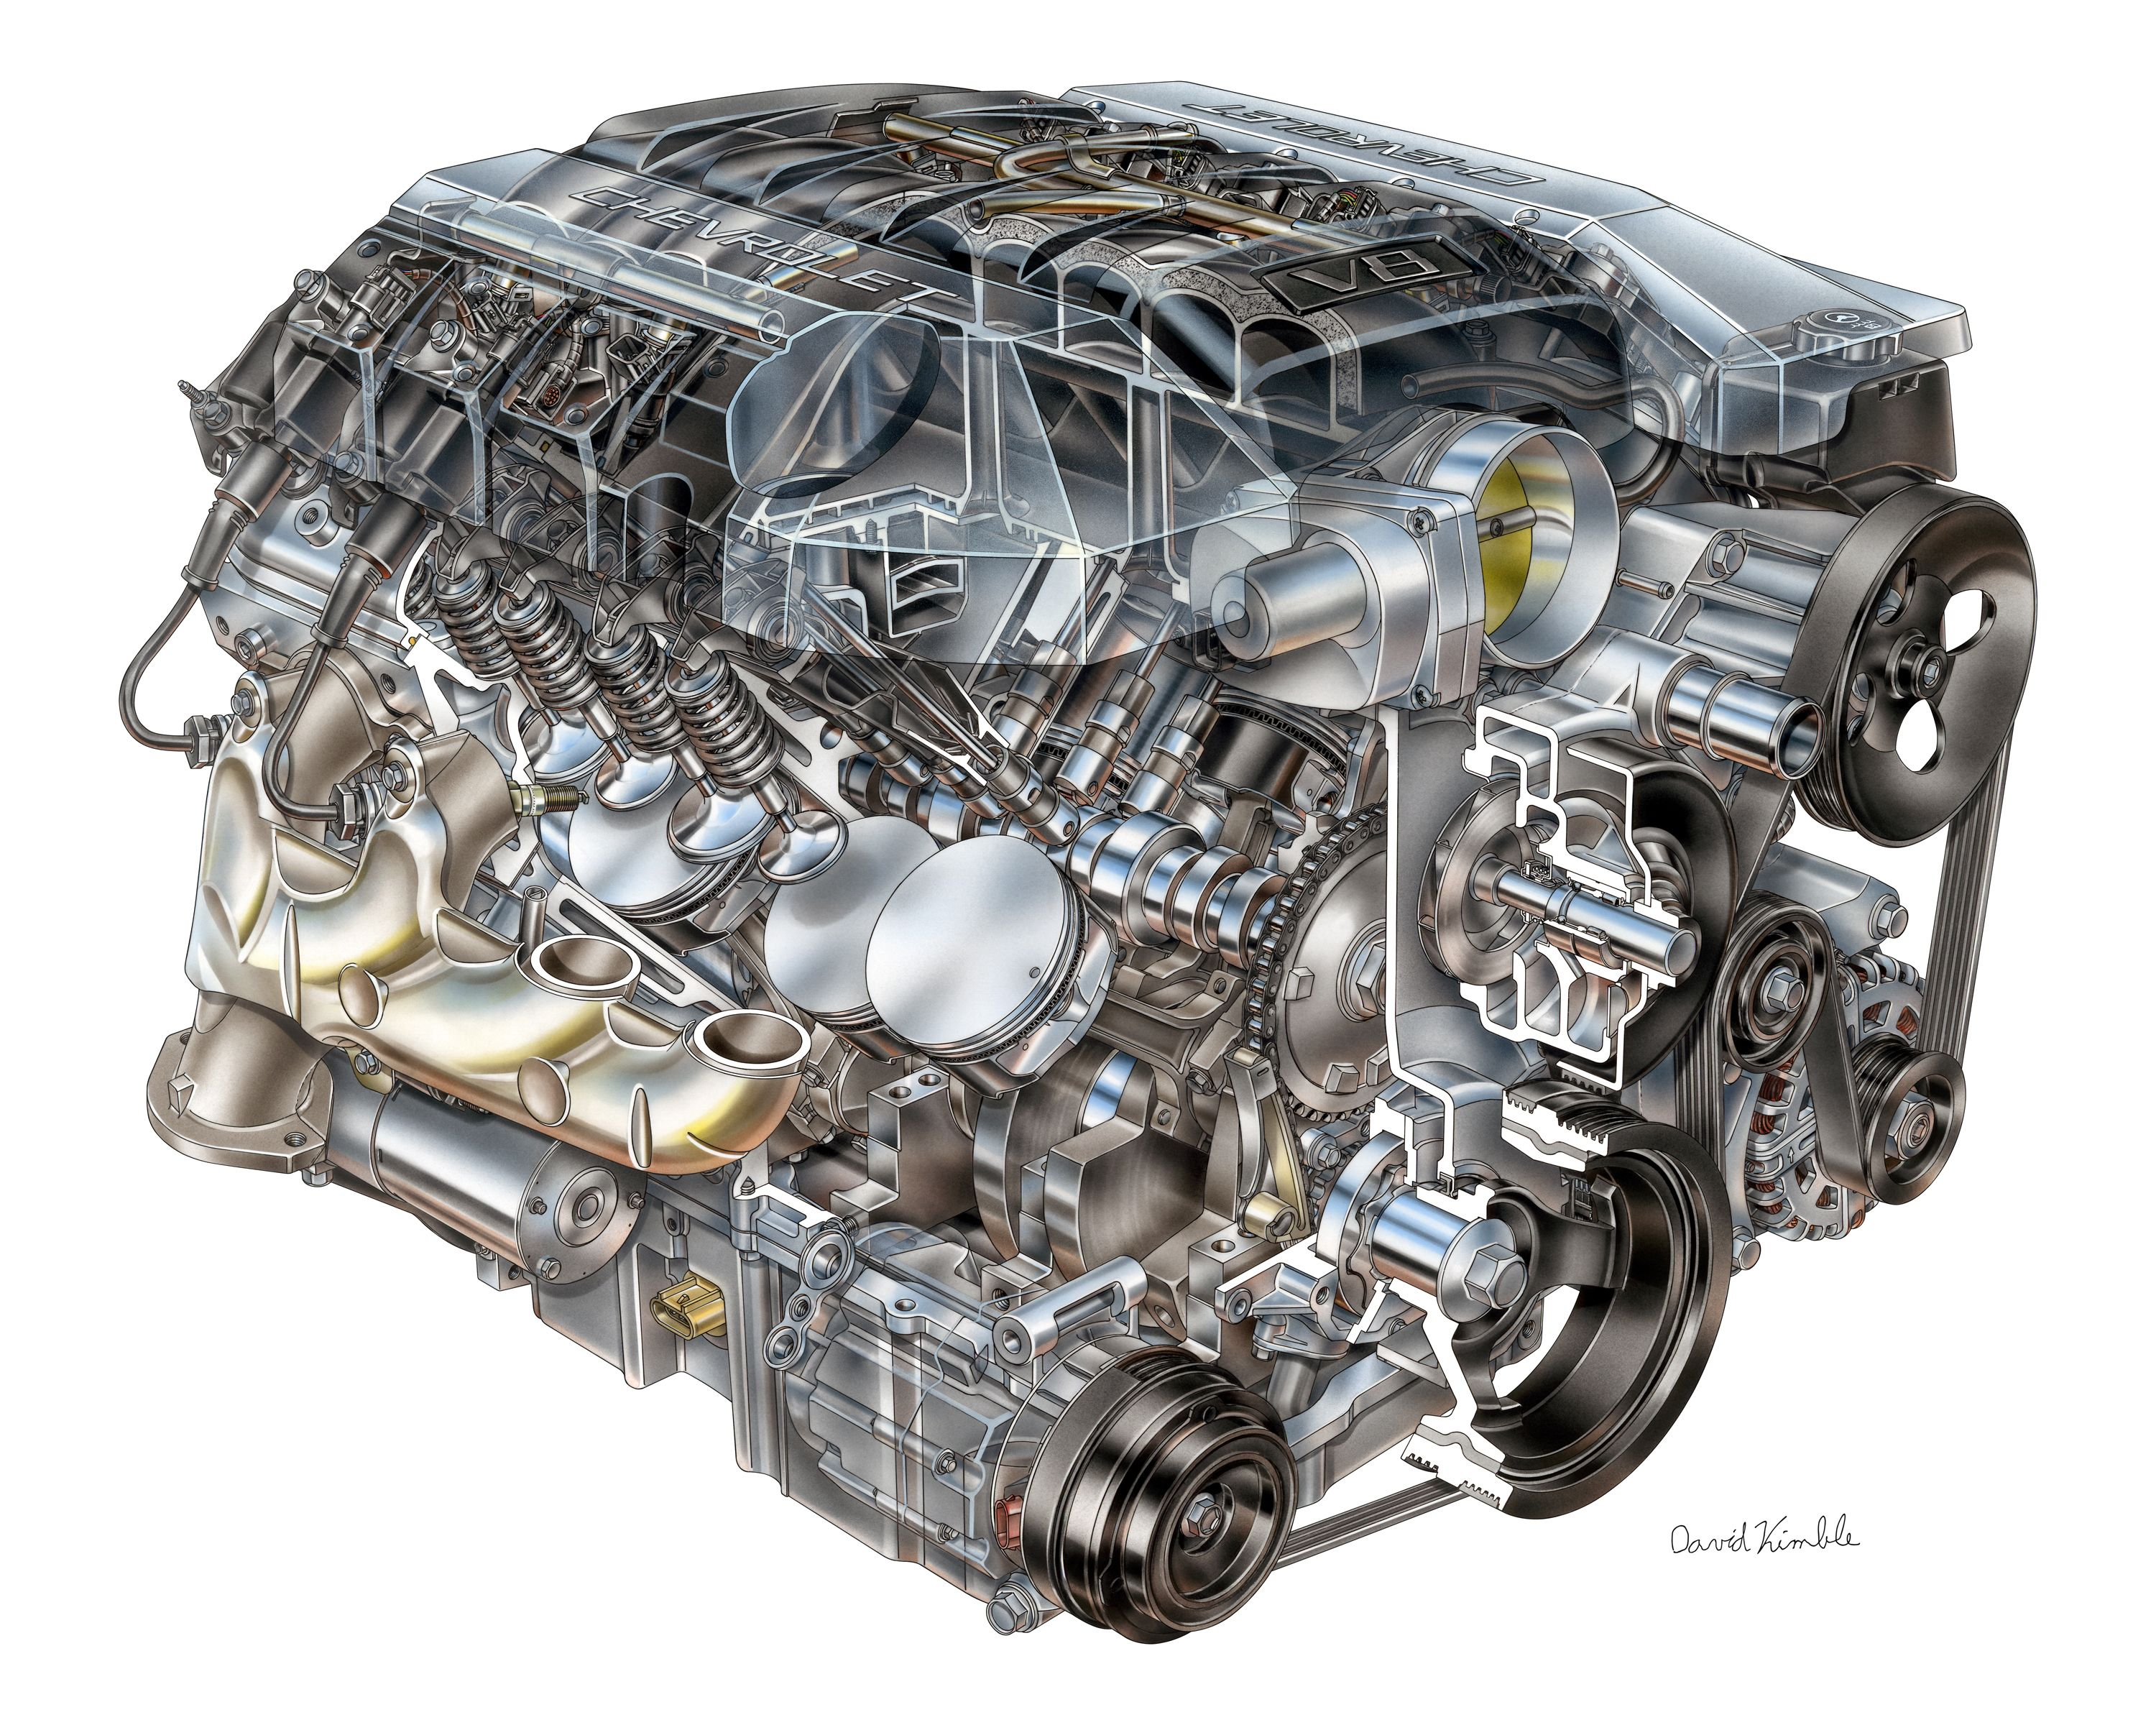 what chevy gains by using a pushrod engine in the corvette corvette v8 engine diagram [ 3000 x 2400 Pixel ]